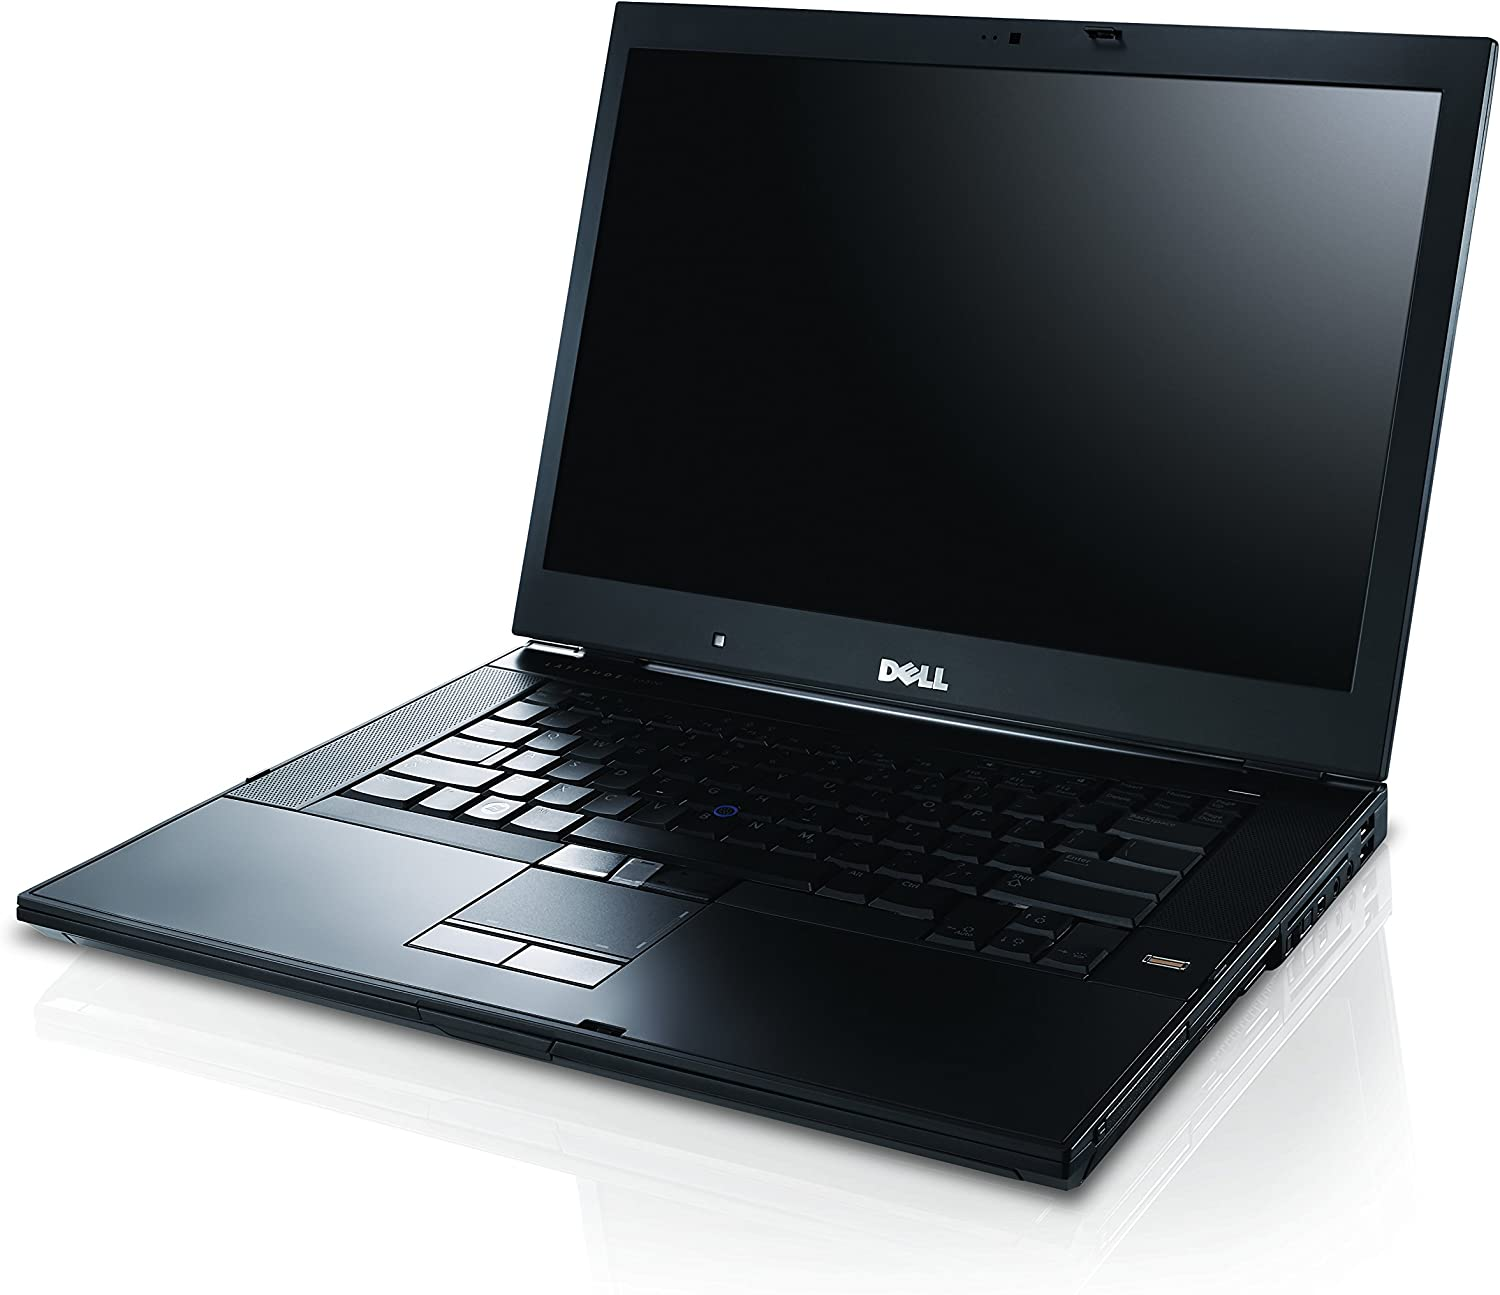 "Dell Latitude E6500 15.4"" Recertified Laptop - Intel Core 2 Duo 2.53, 4GB, 320GB, DVD-RW, Win 7 Professional 64-Bit"